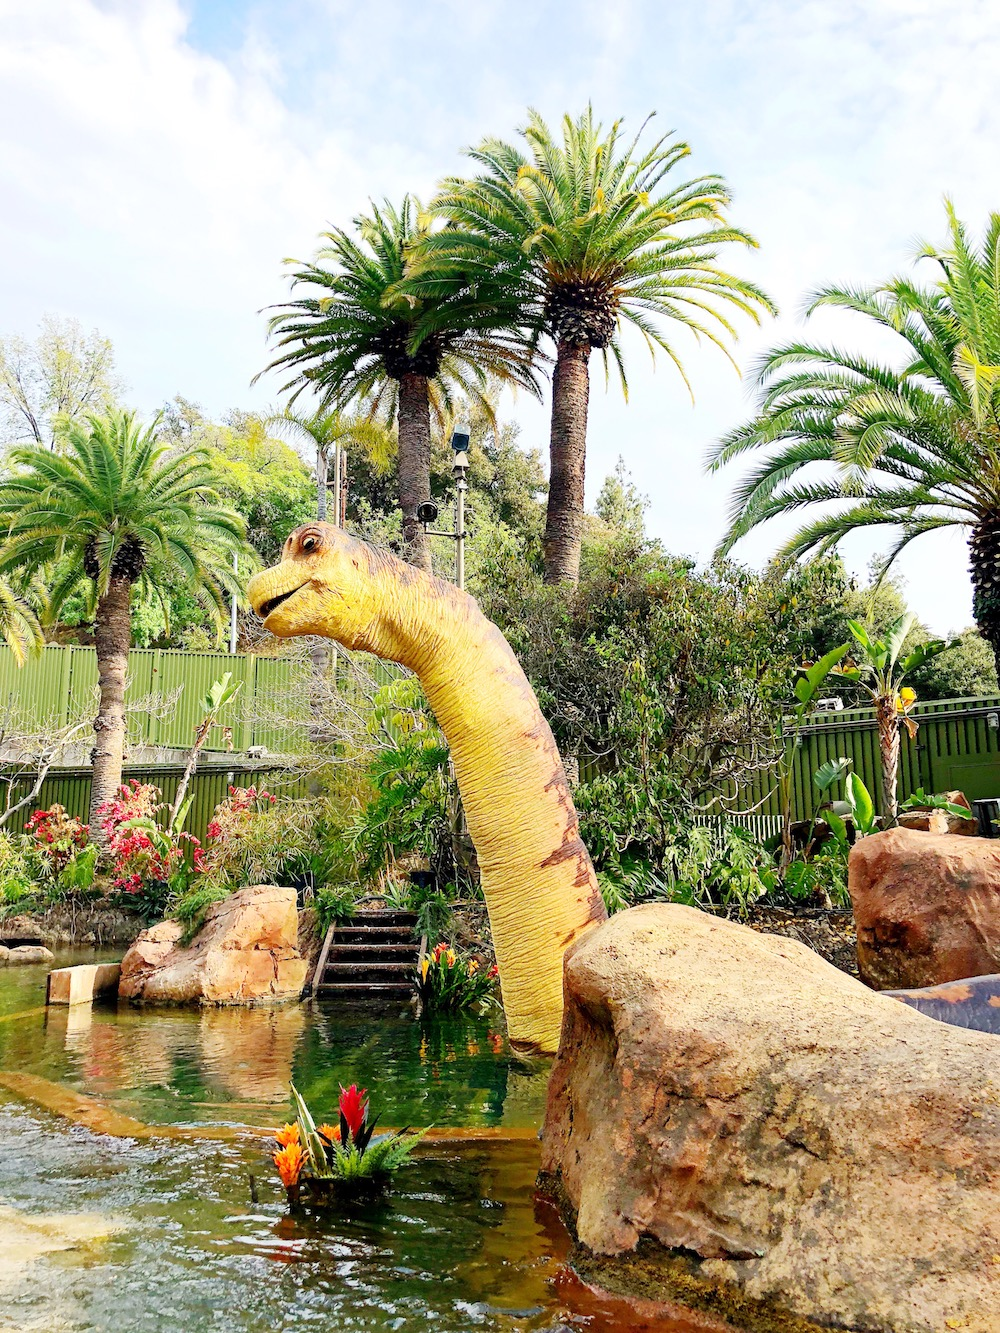 Dinosaur along the river at universal studios - livingmividaloca.com